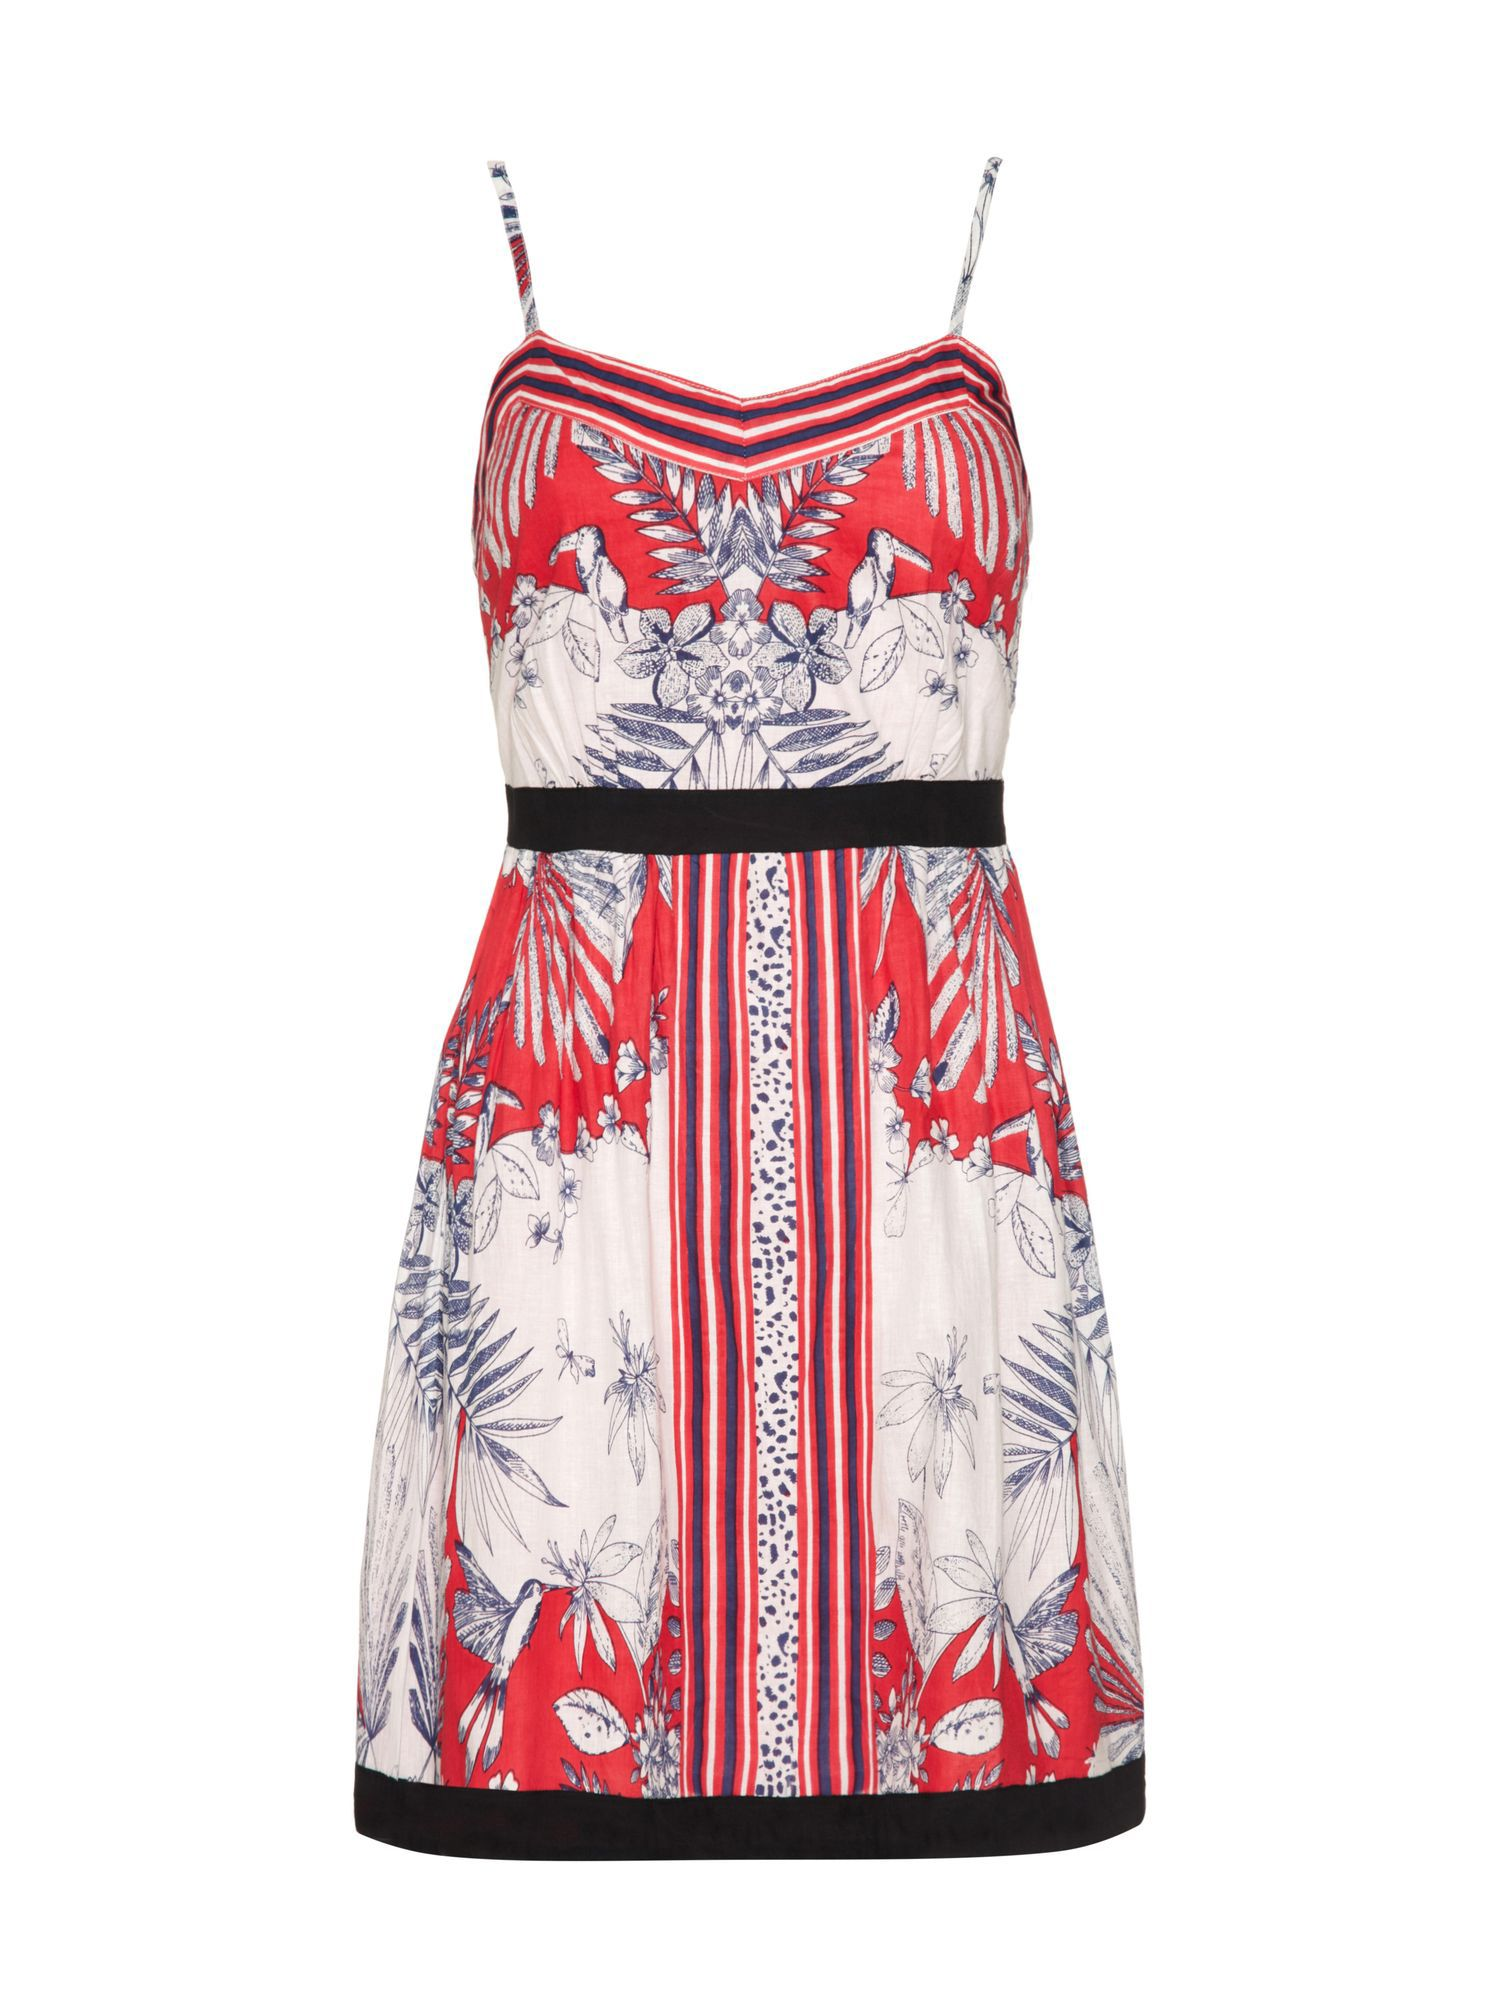 Fit and flare dresses fit and flare party dresses fit and flare